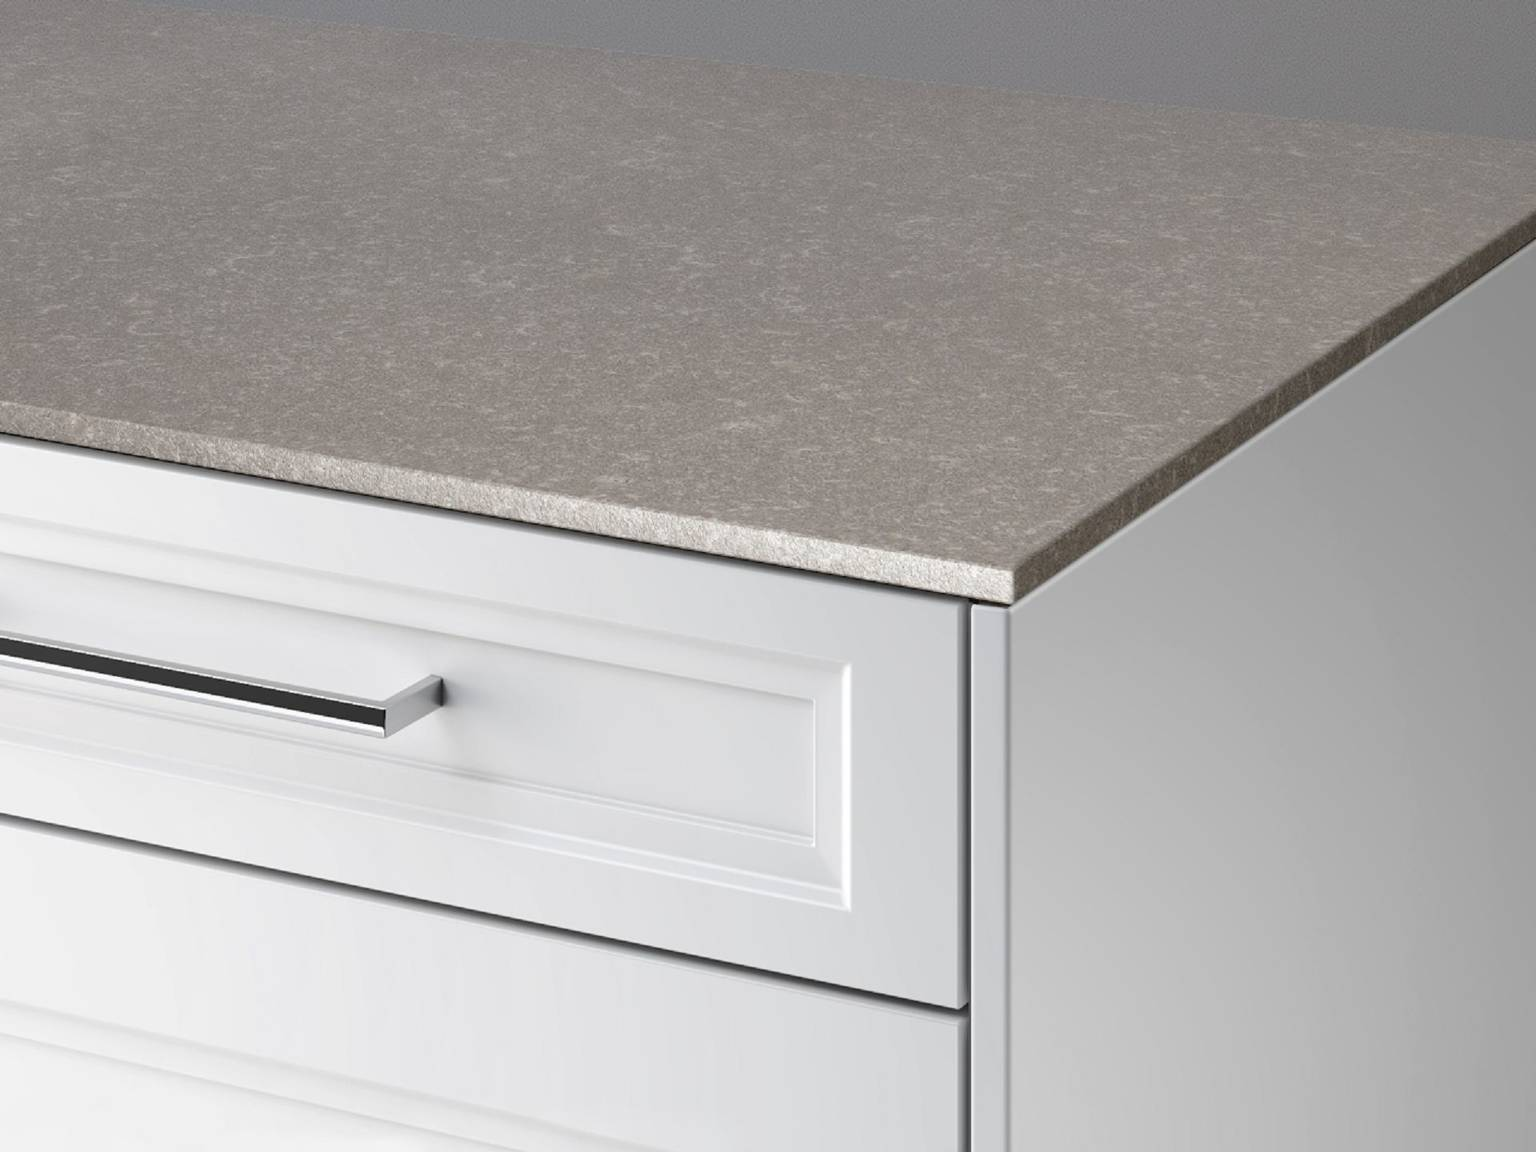 SieMatic StoneDesign kitchen countertop in 1 cm thickness look